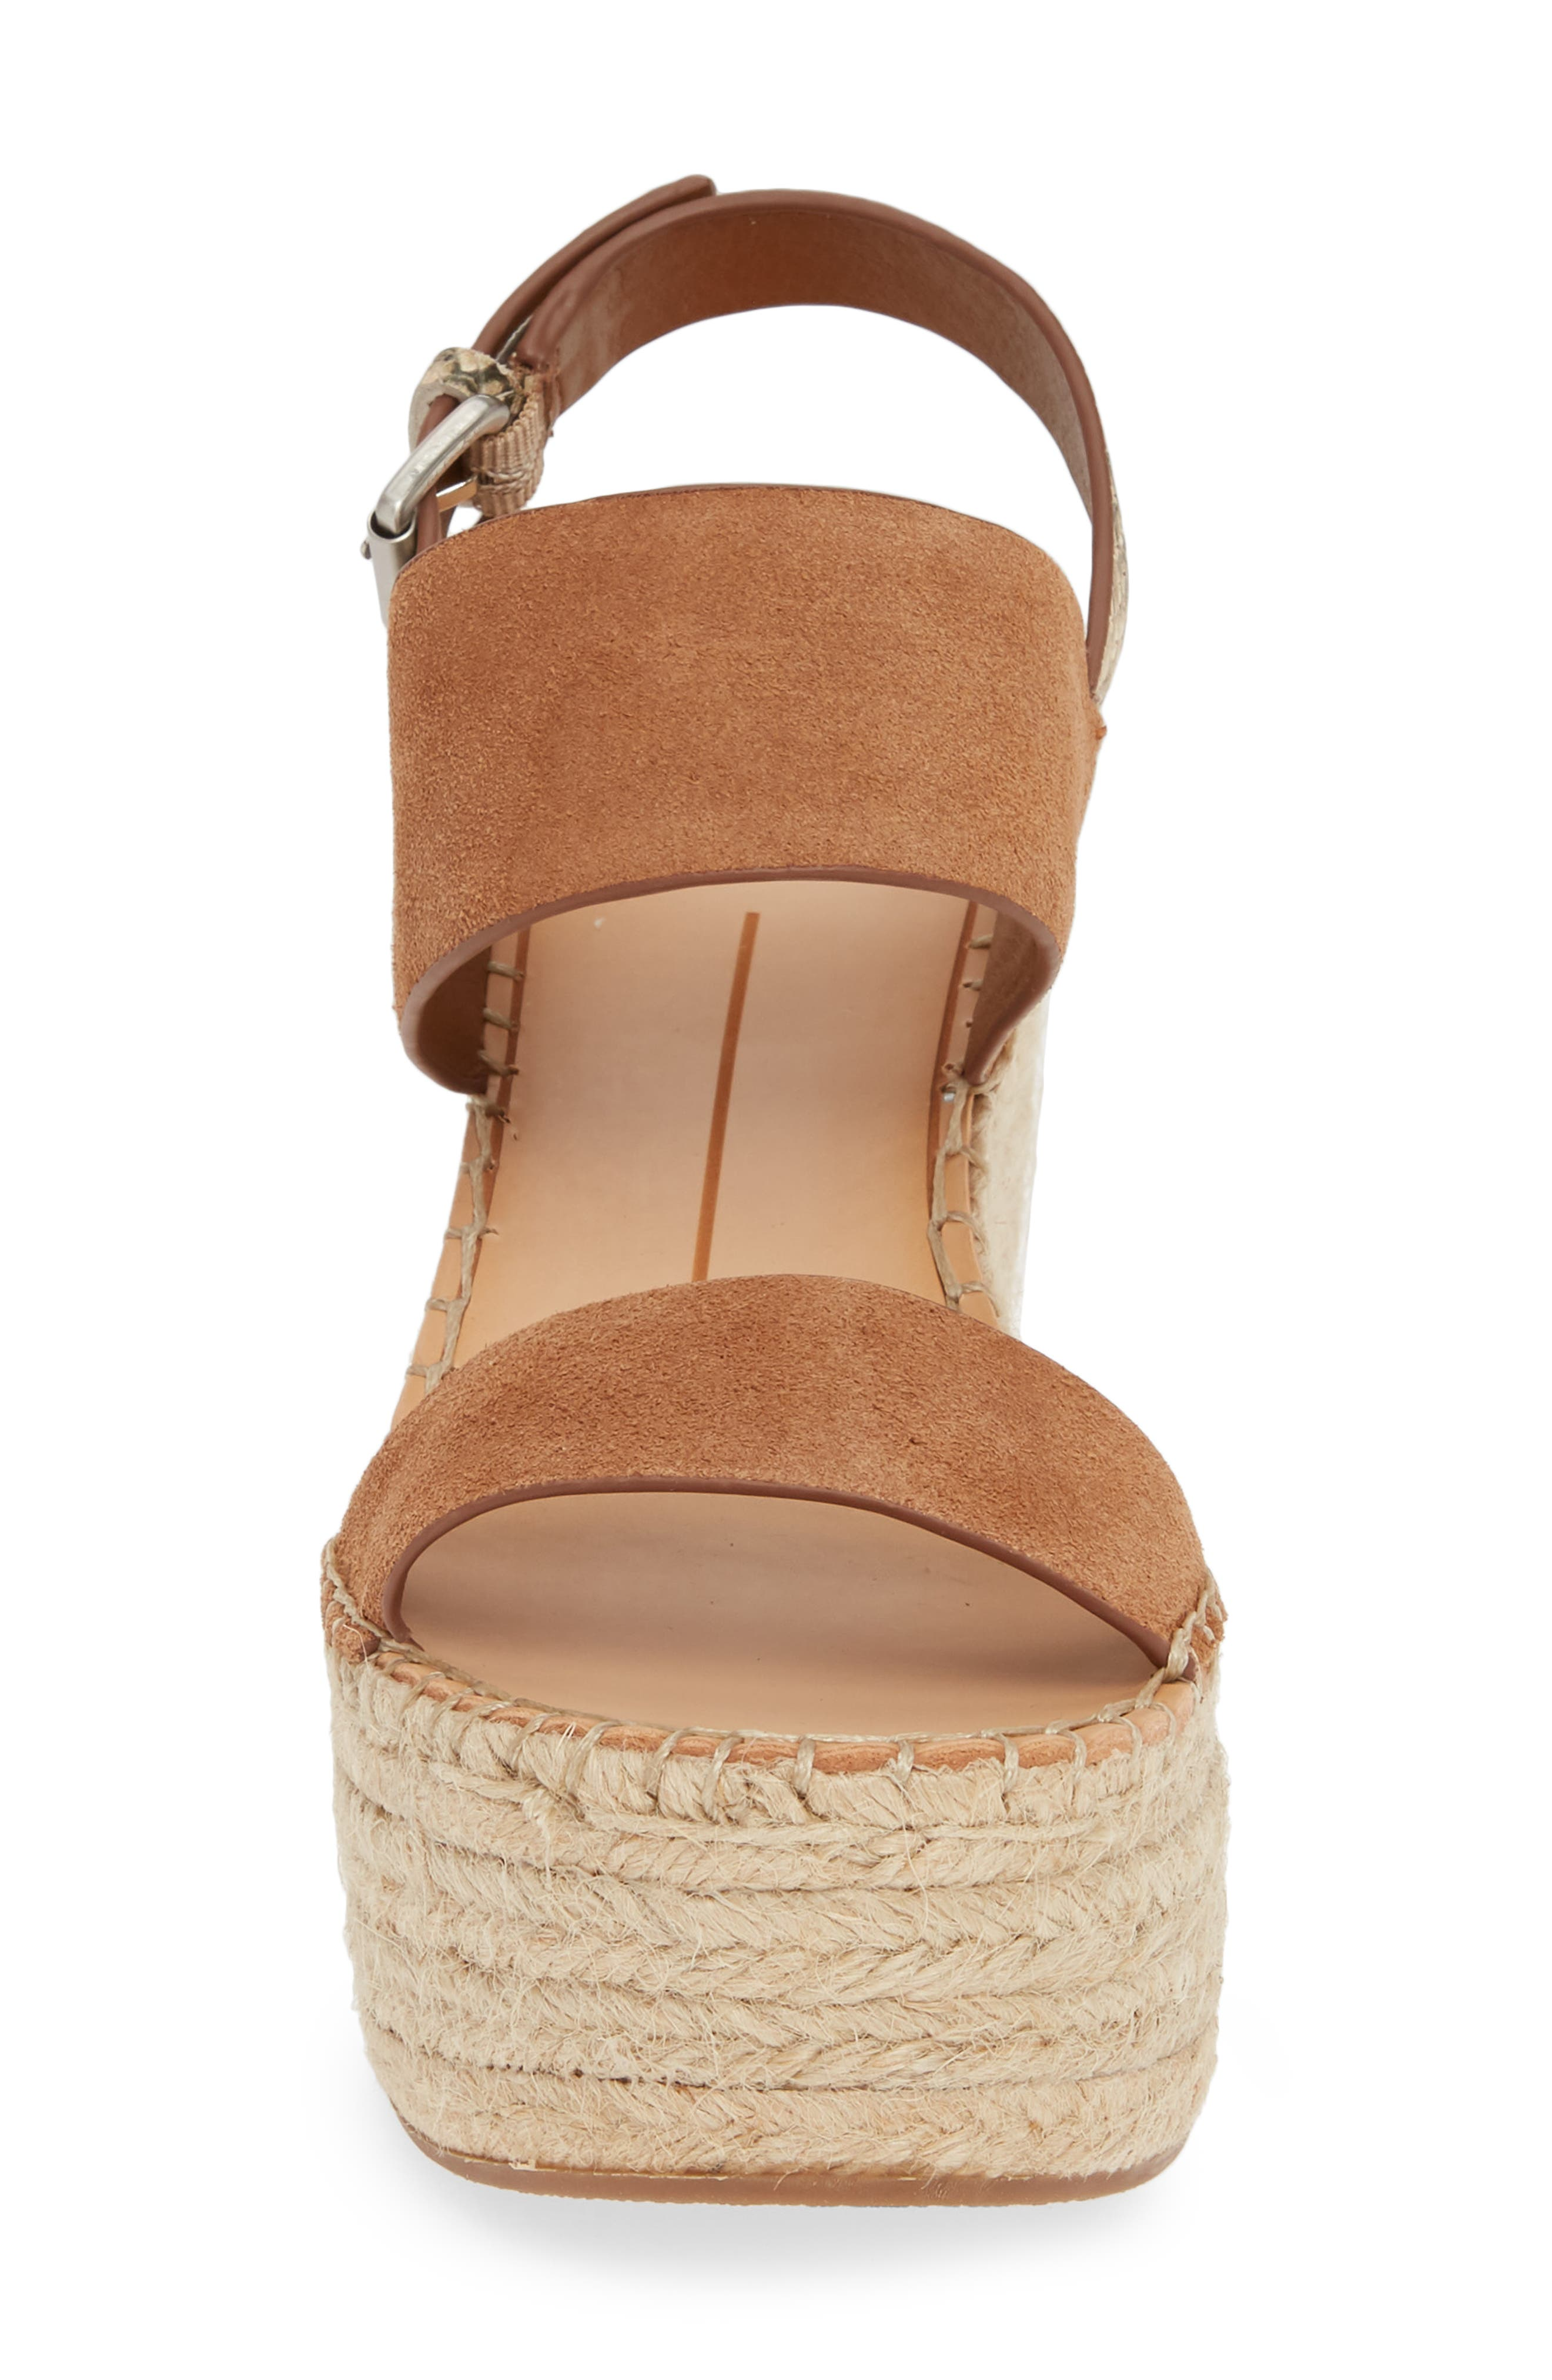 DOLCE VITA, Spiro Platform Wedge Sandal, Alternate thumbnail 4, color, BROWN SUEDE